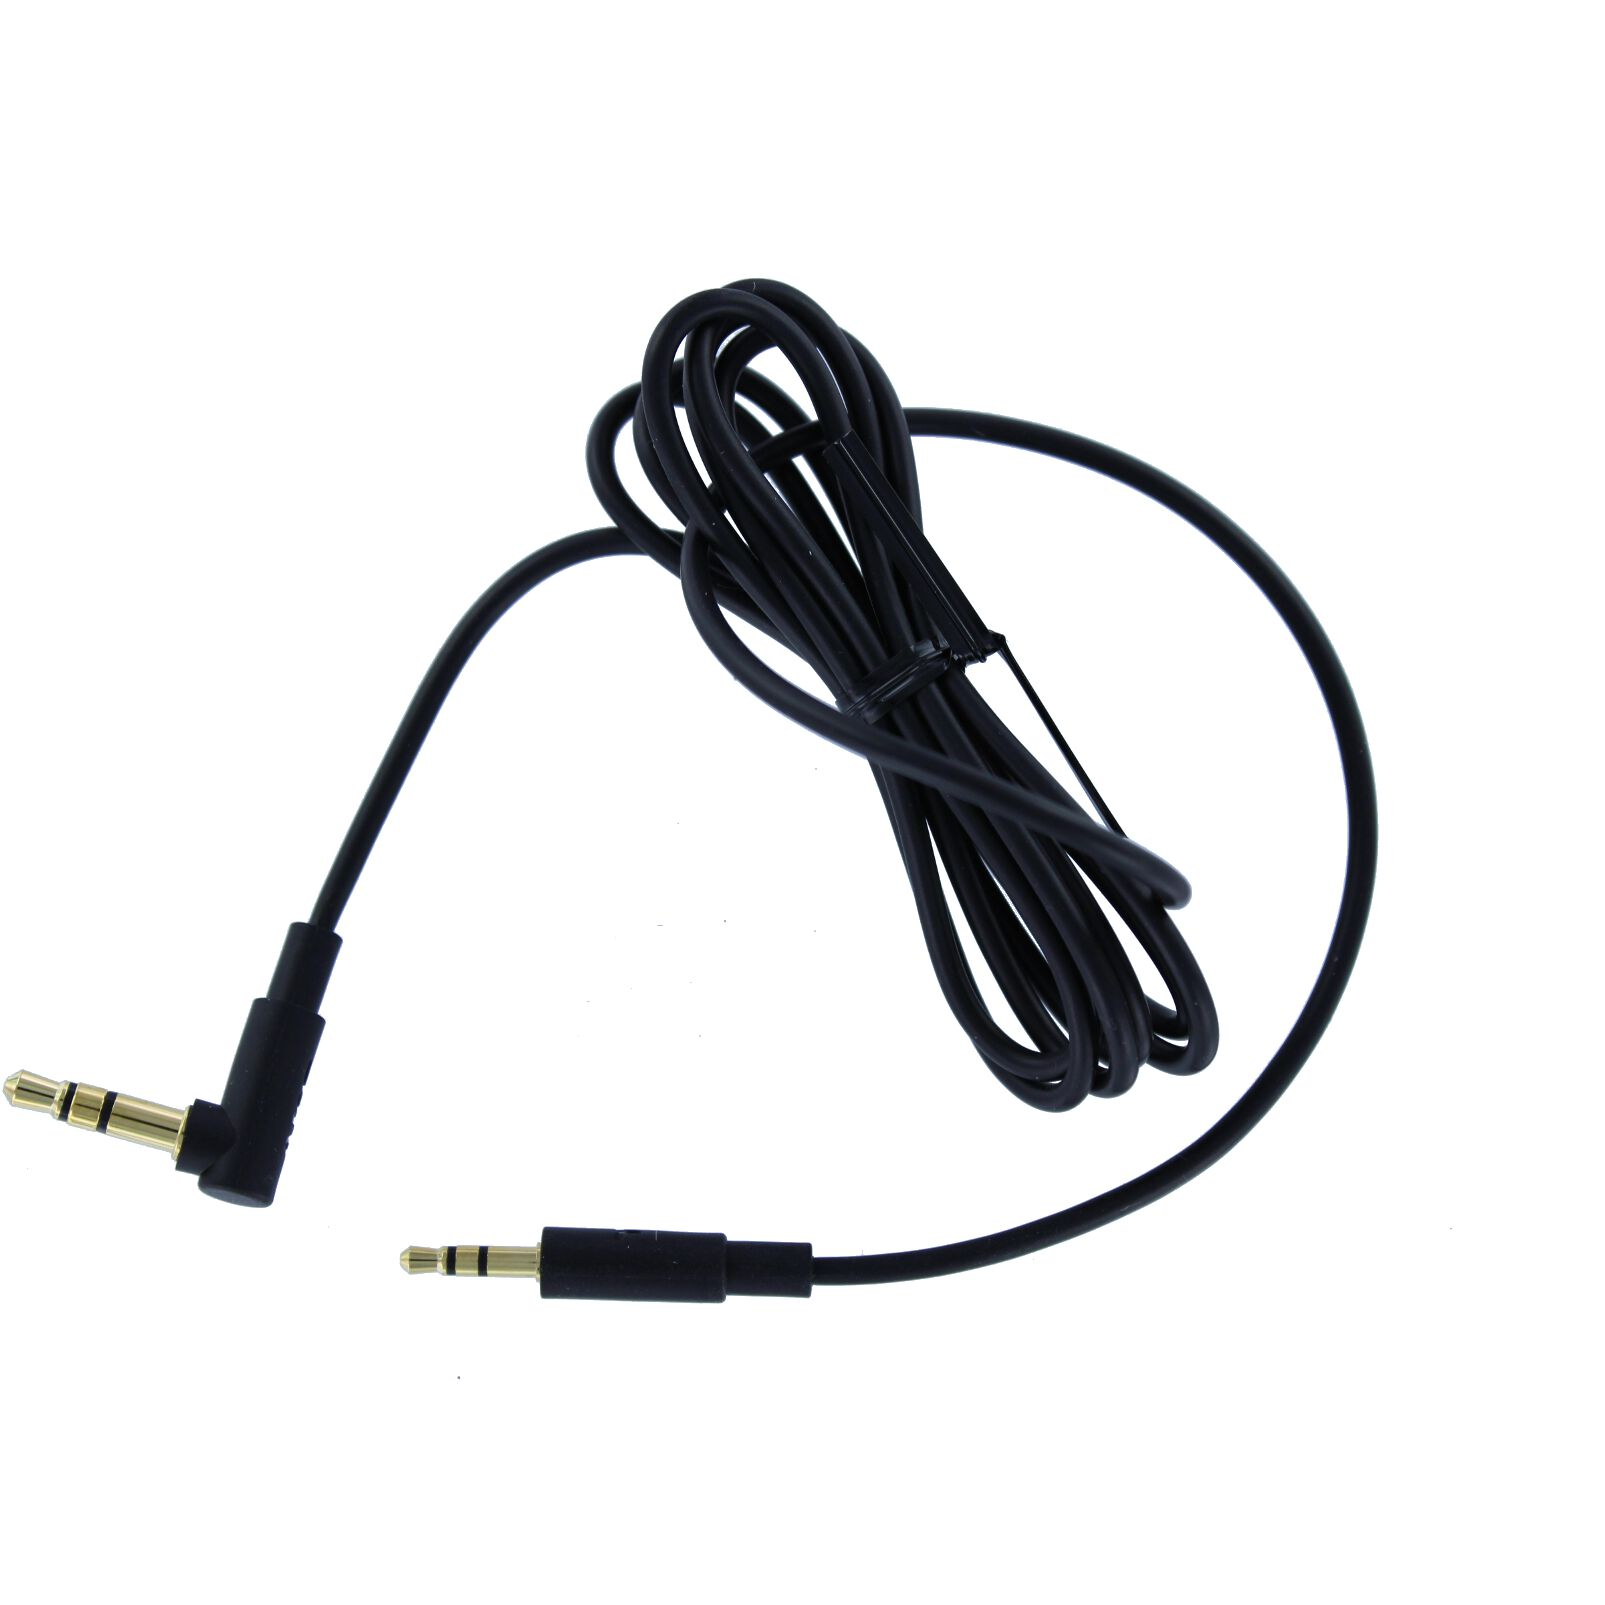 Image of   AKG Cable without remote, 130cm, N60 Black